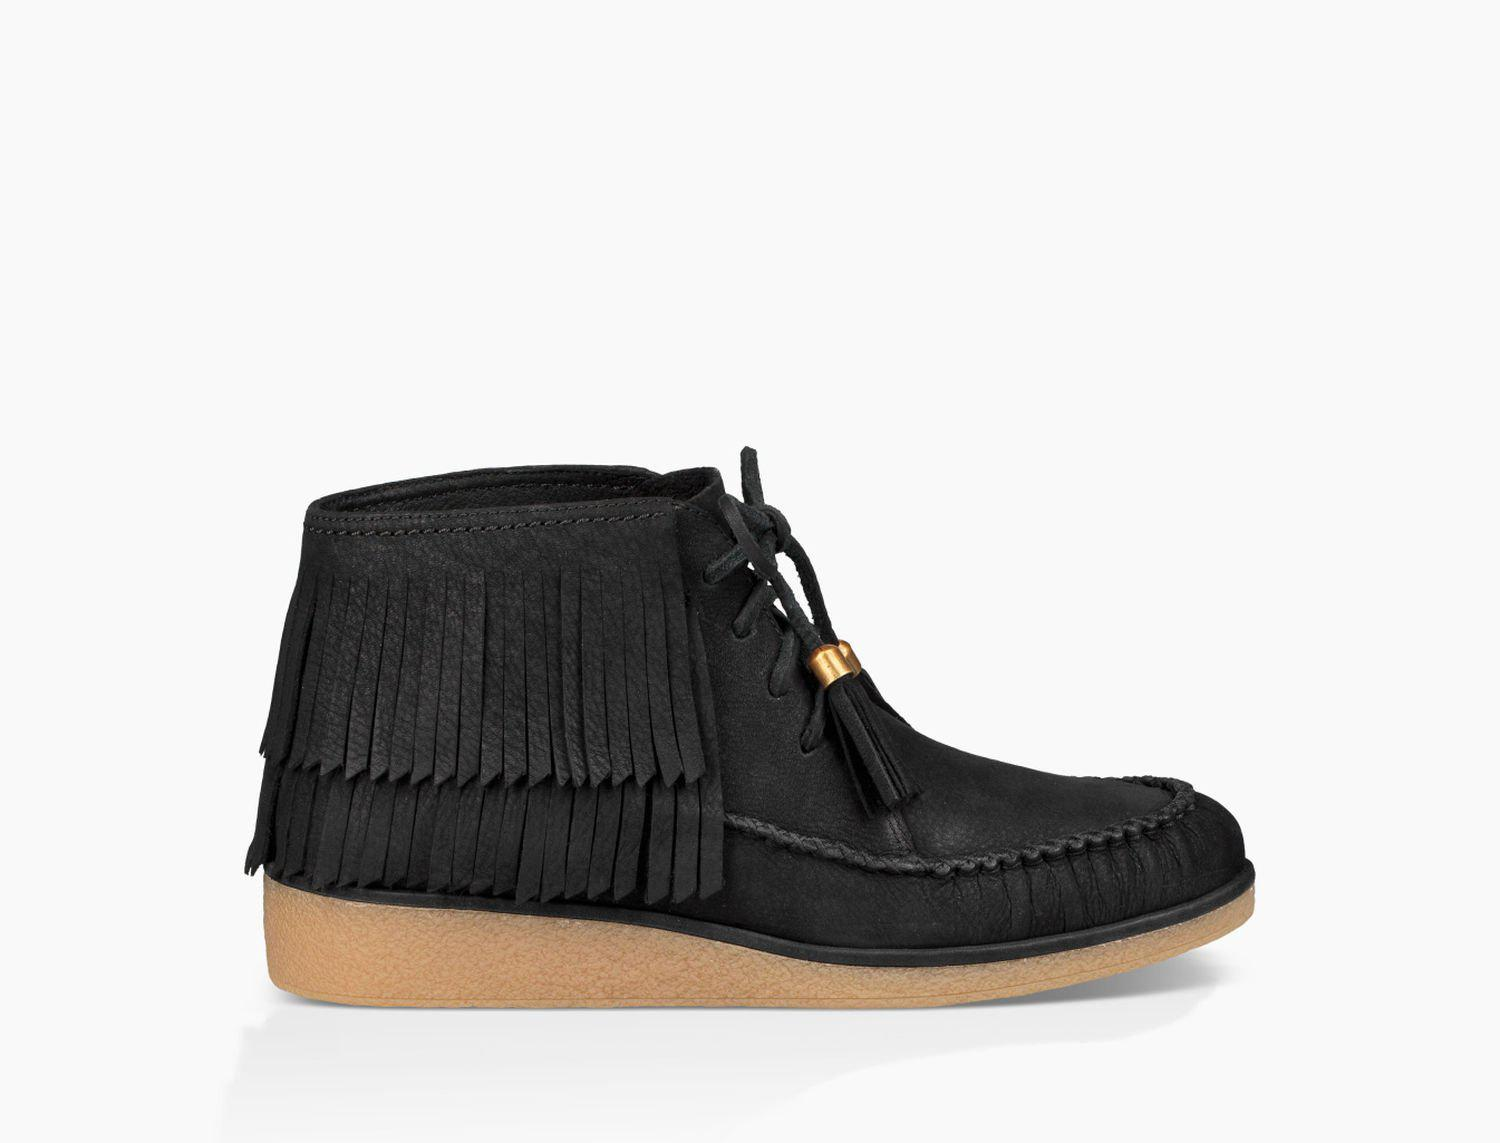 UGG Caleb Leather Wedge Bootie a6Qt7S